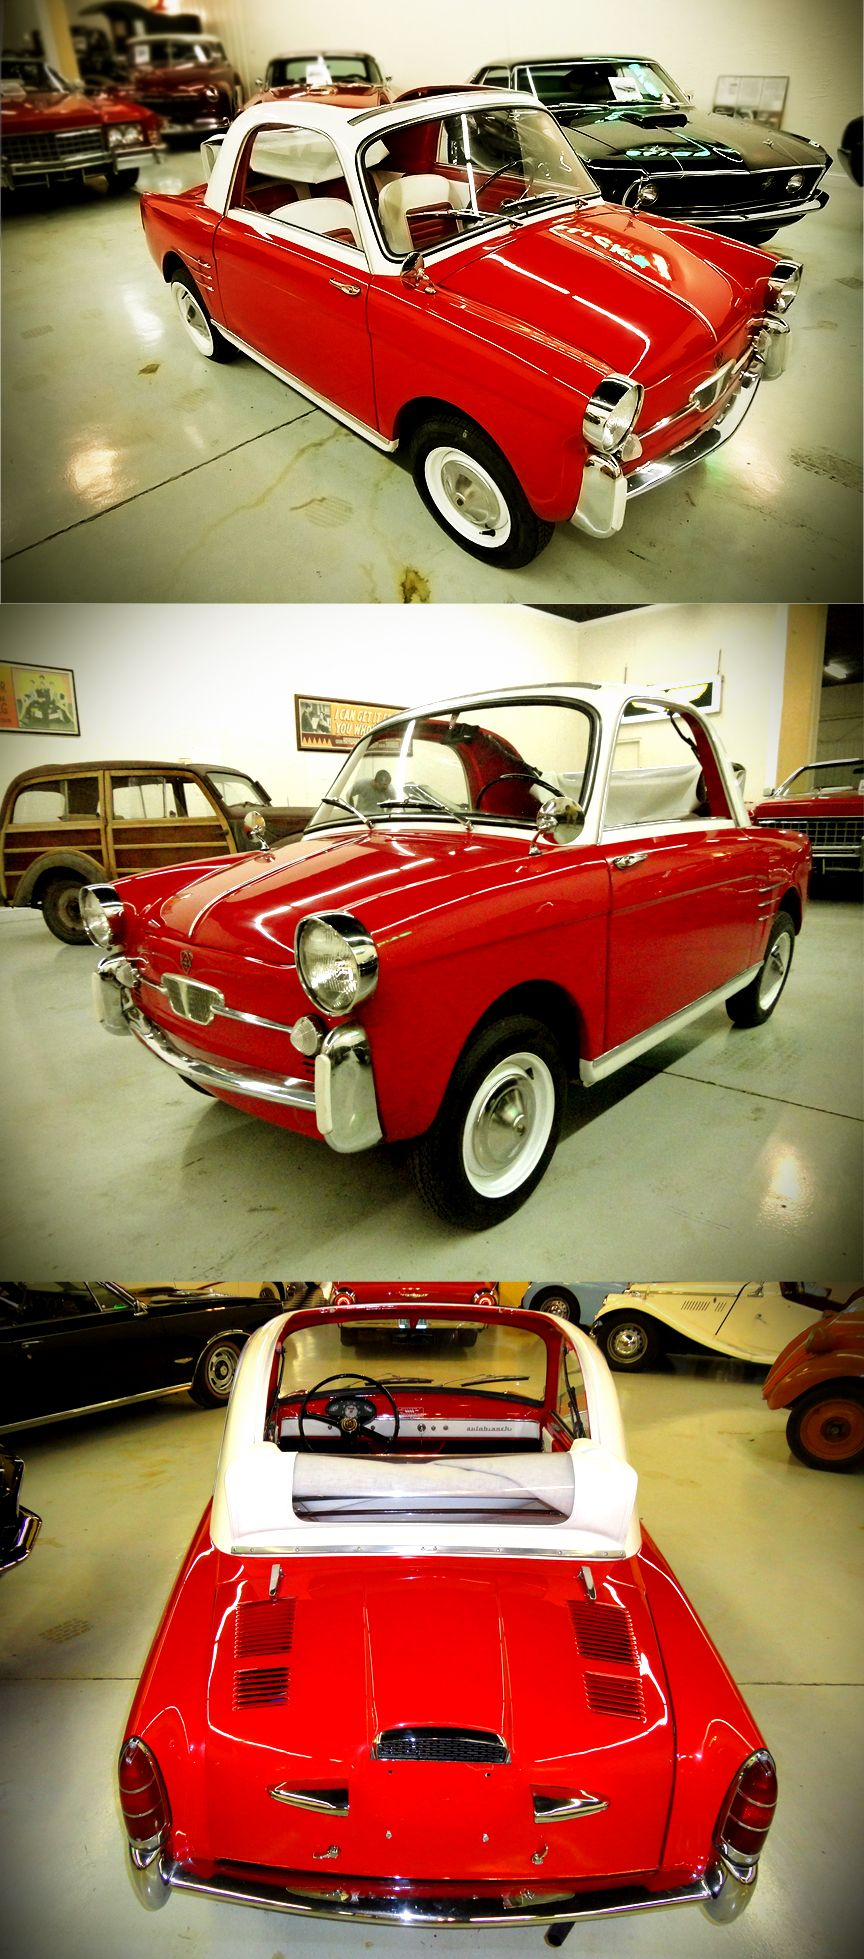 1959 AUTOBIANCHI TRANSFORMABLE (2 door)